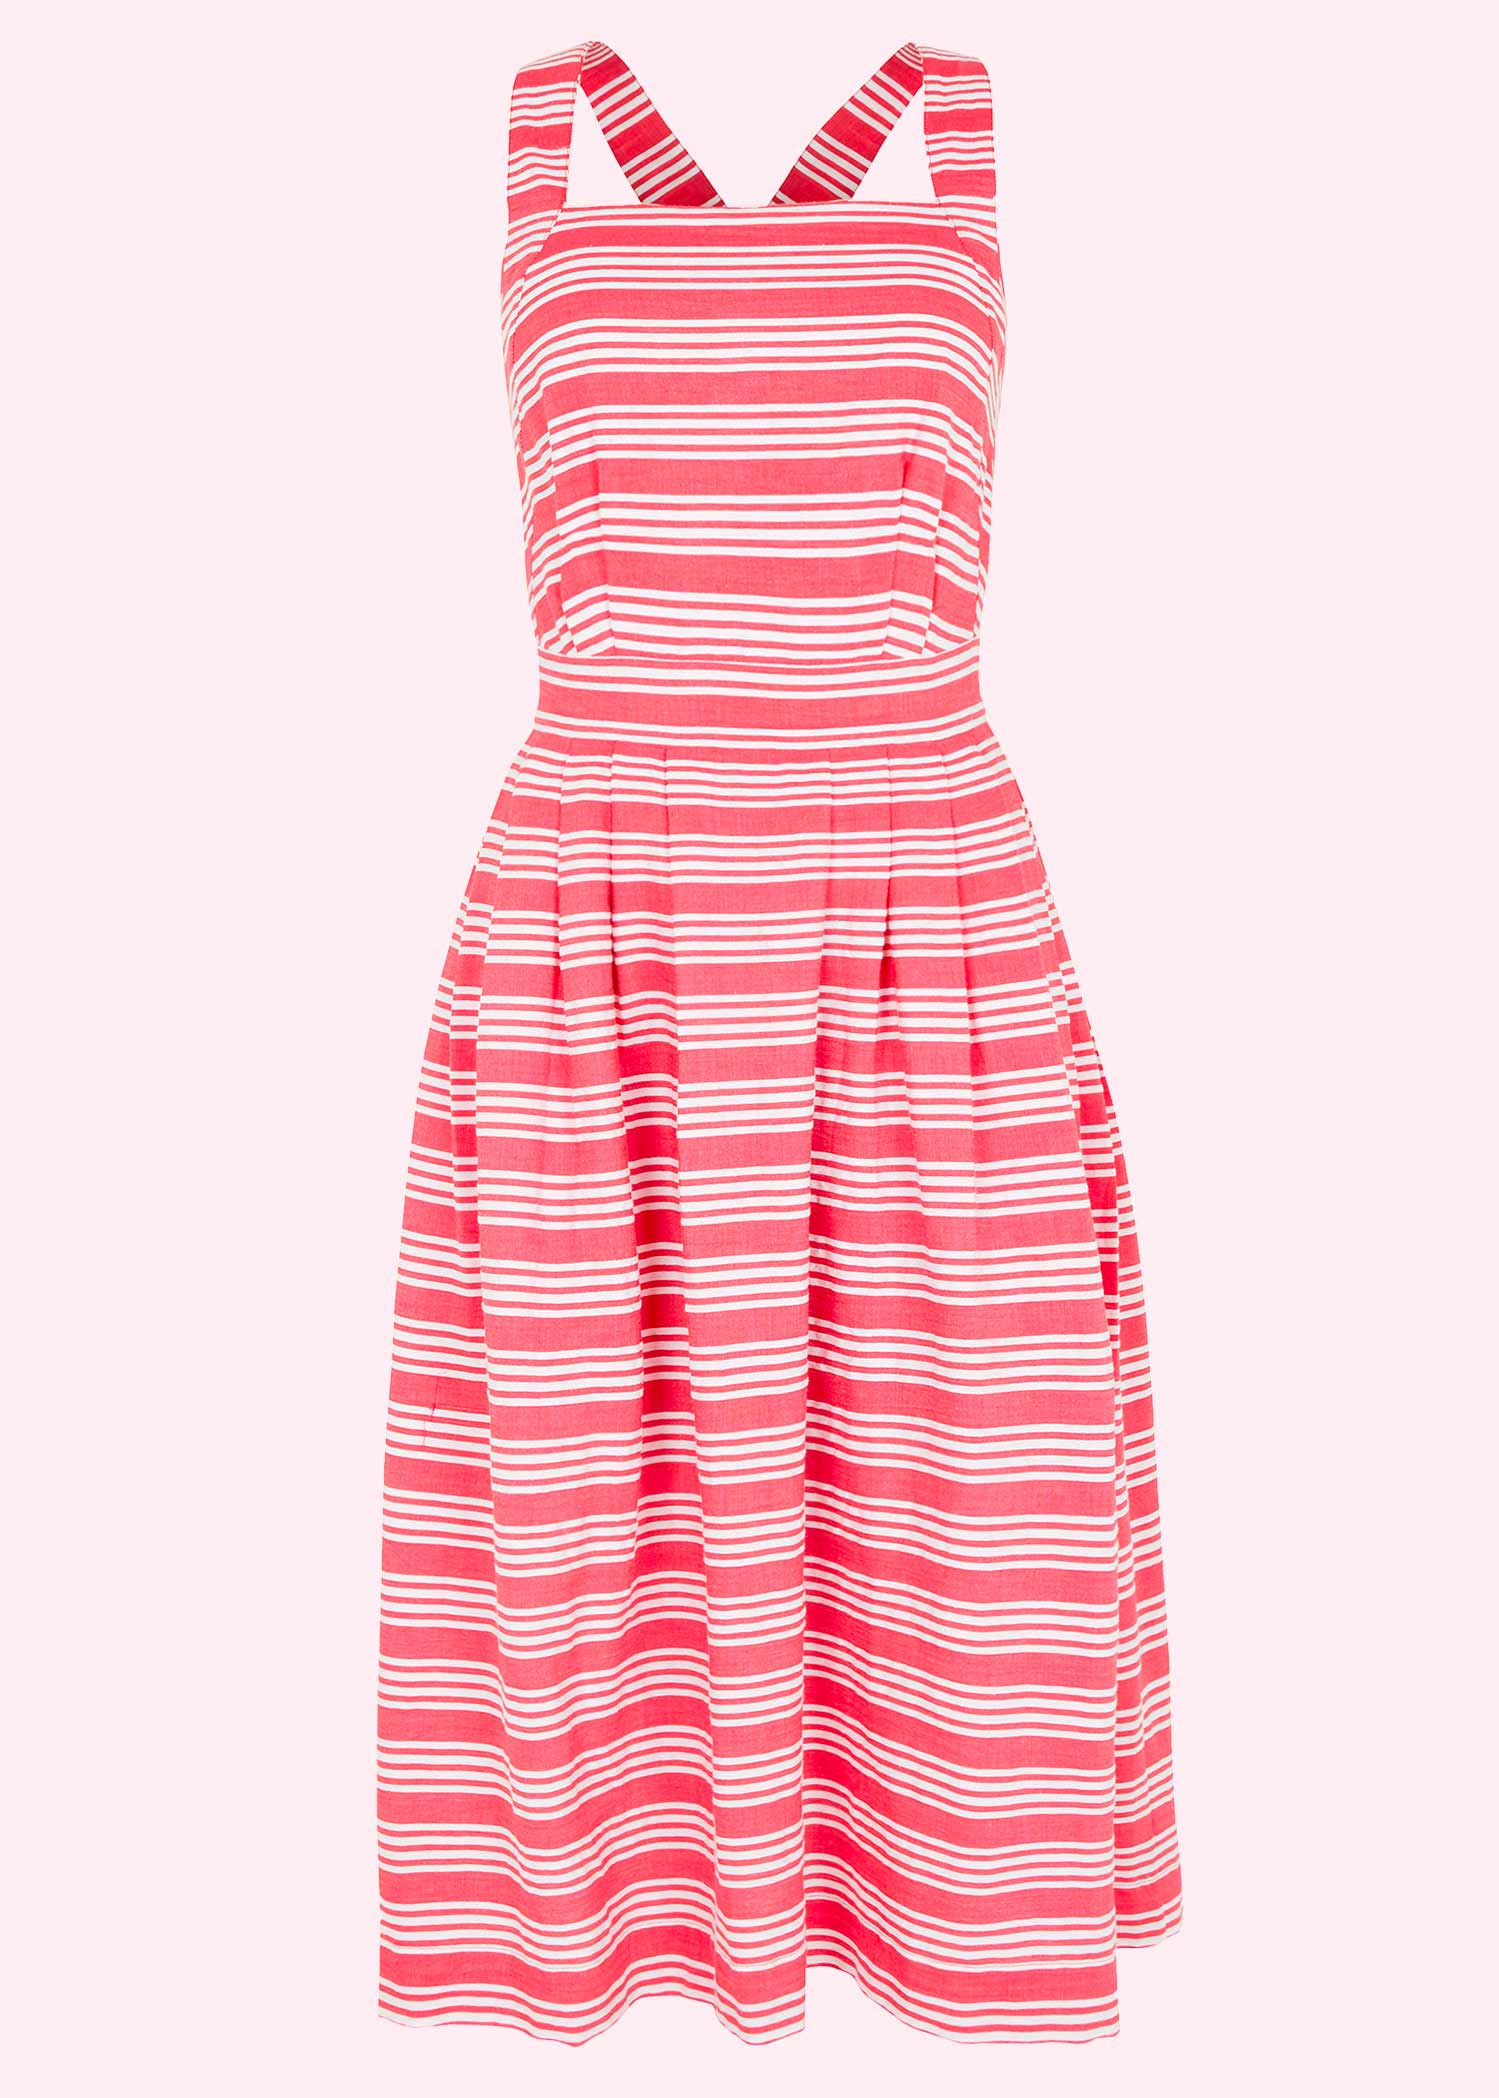 Striped white and red striped retro summer dress